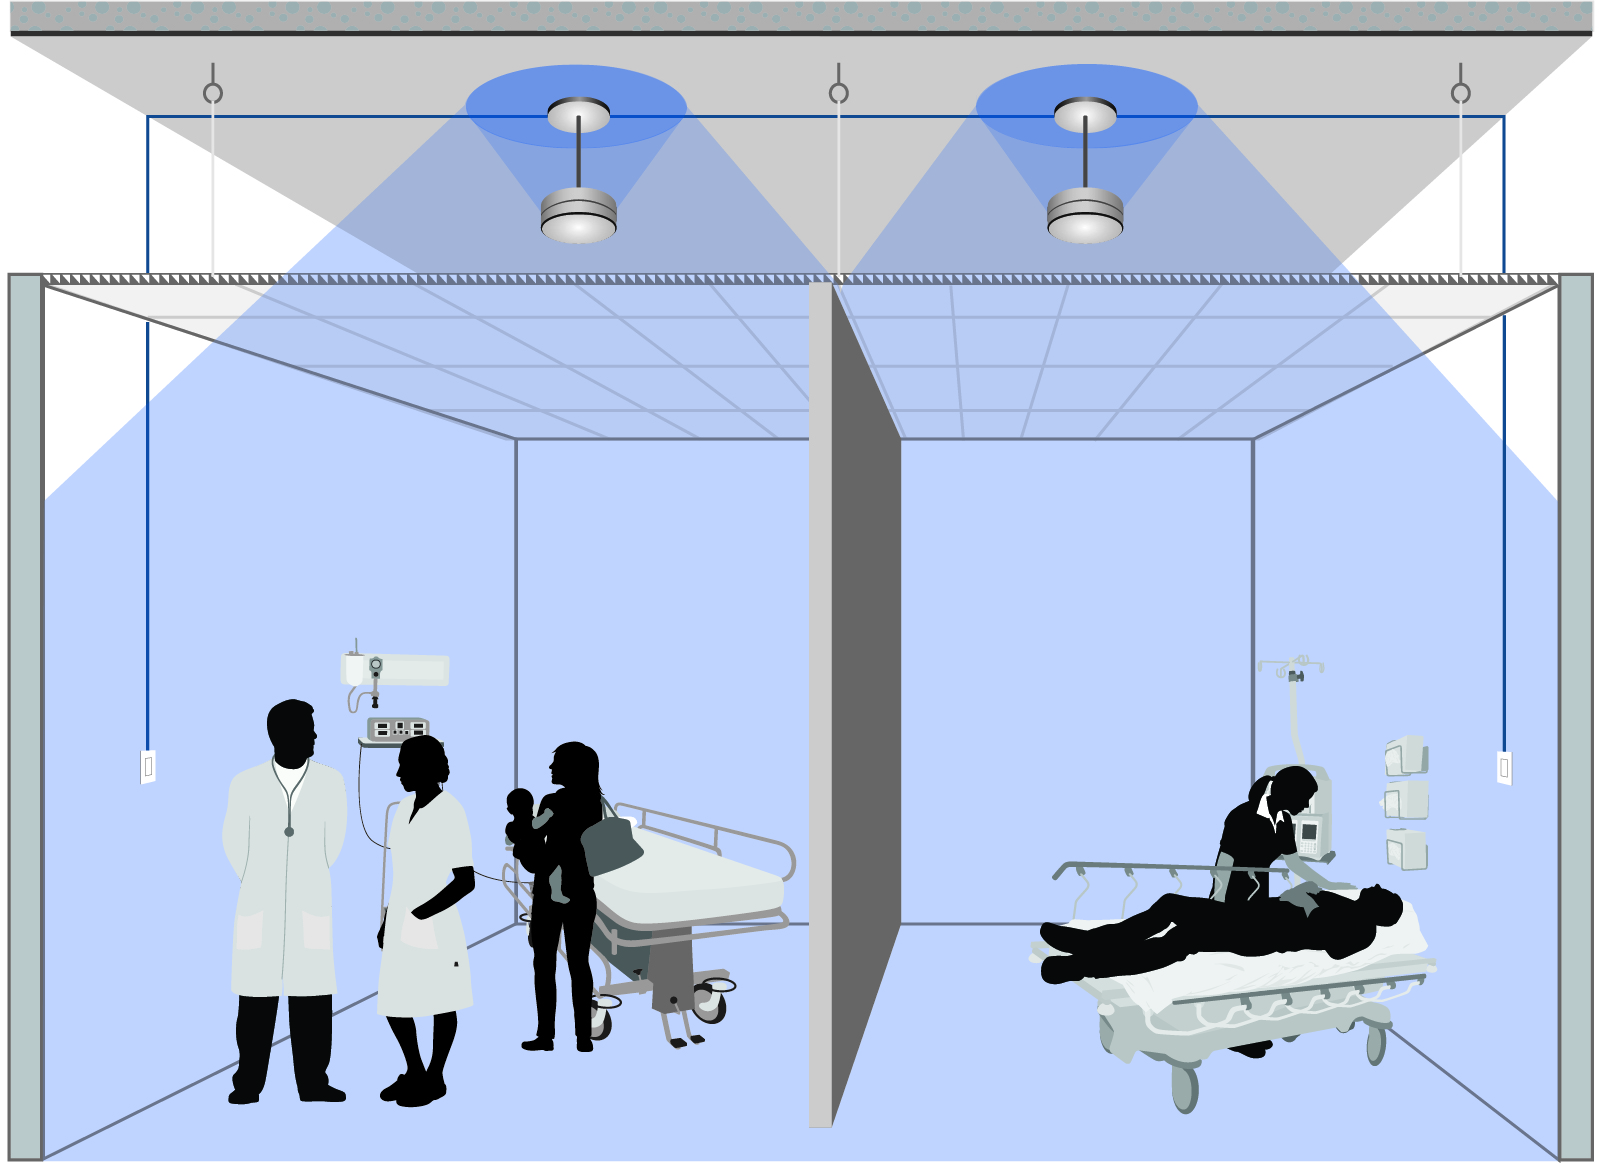 A sound masking system's loudspeakers are typically installed in a gridlike pattern above the suspended ceiling. Patients and/or nursing staff can be given control over volume in patient rooms. Images courtesy K.R. Moeller Associates Ltd.